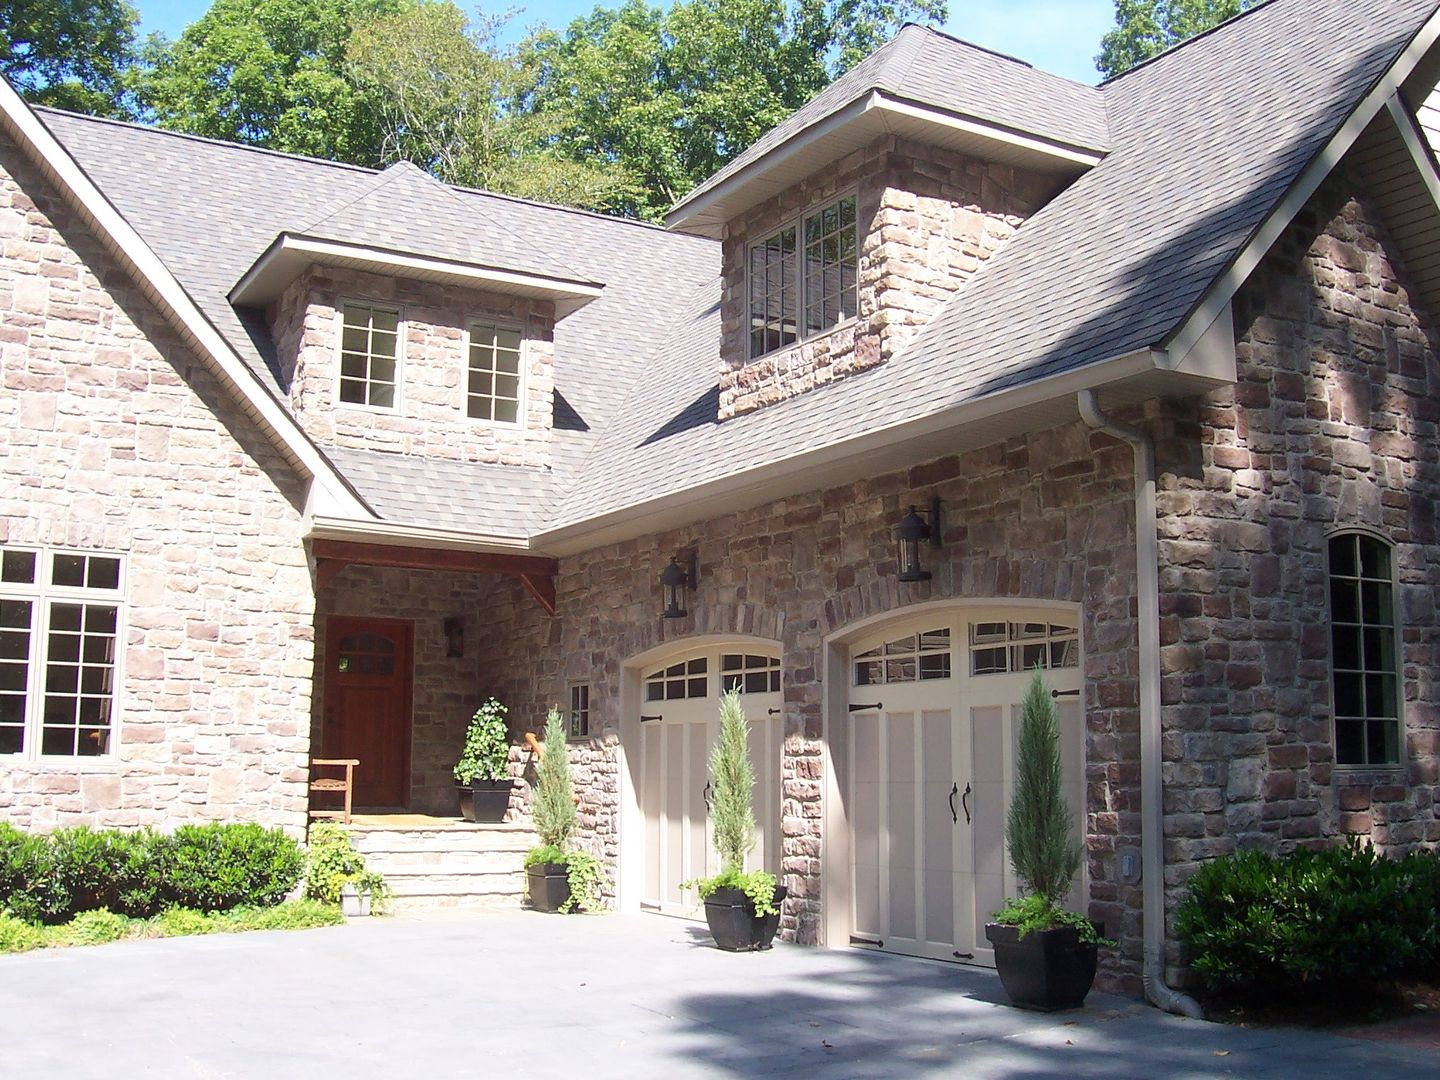 custom stone house with arched garage doors oversized dormers 1212 pitch designed by kerrin muller of muller design company interior and exte - Custom Home Design Company